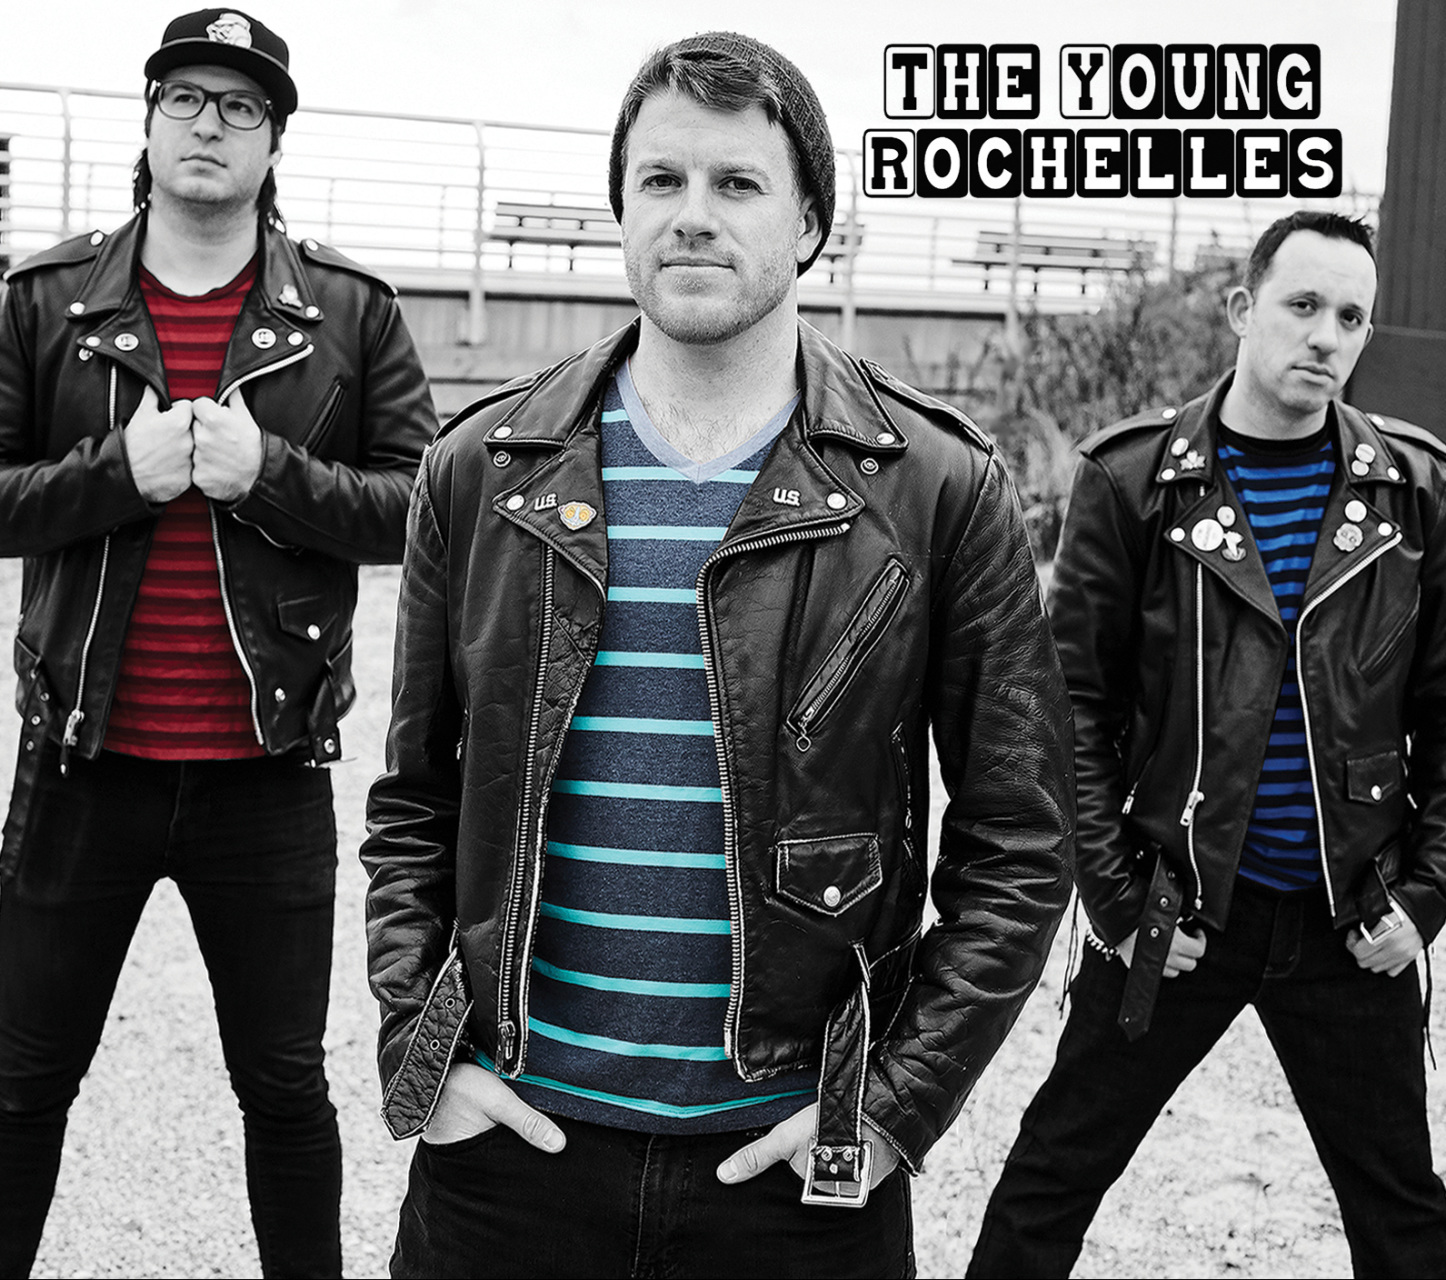 The Young Rochelles - The Young Rochelles